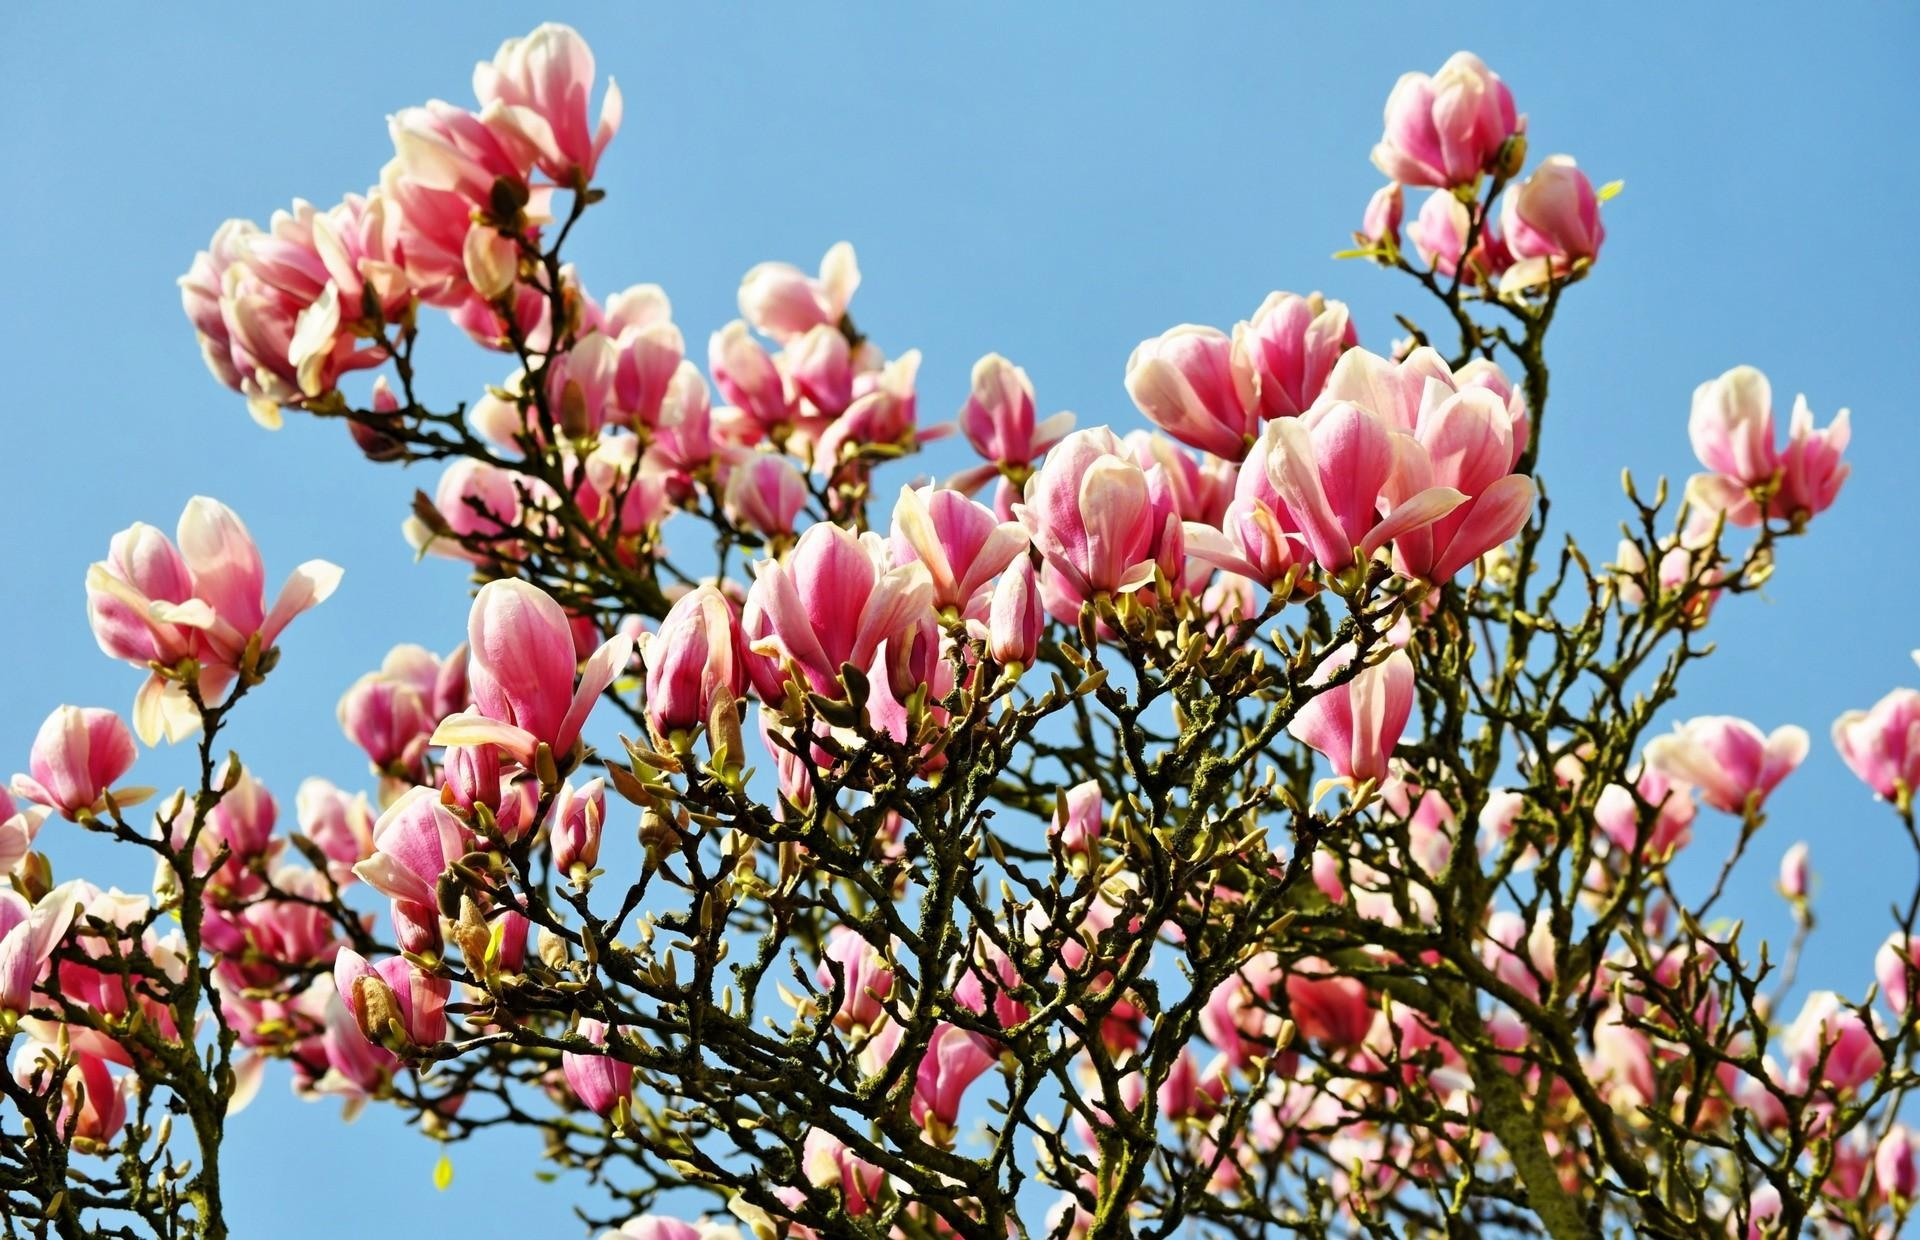 141613 download wallpaper Flowers, Magnolia, Bloom, Flowering, Branches, Spring, Sky screensavers and pictures for free